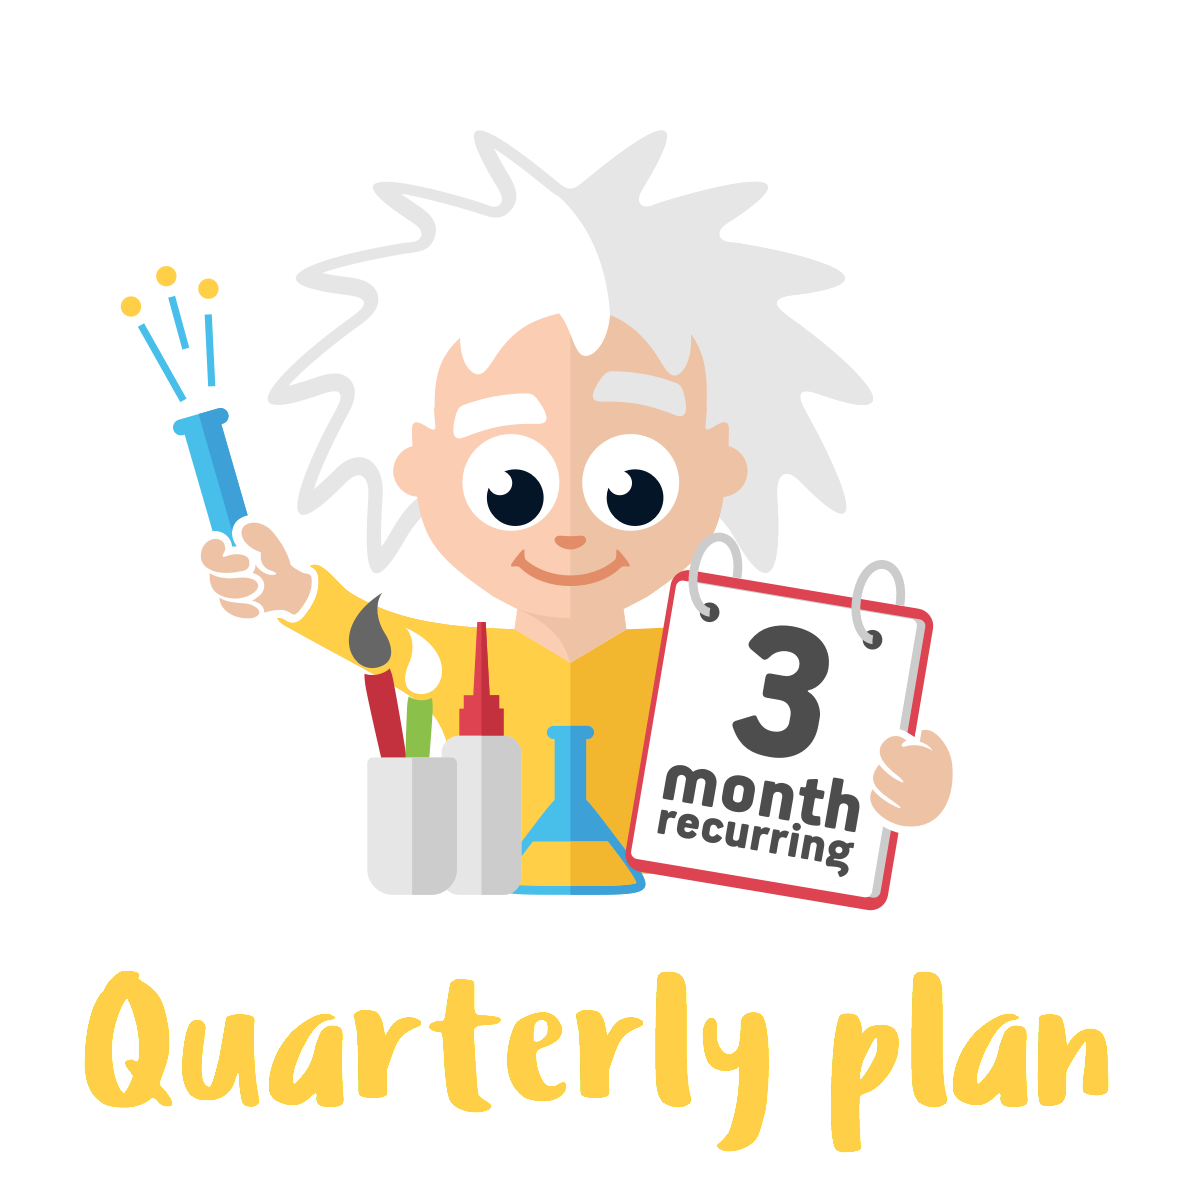 Standard Subscription, Quarterly plan